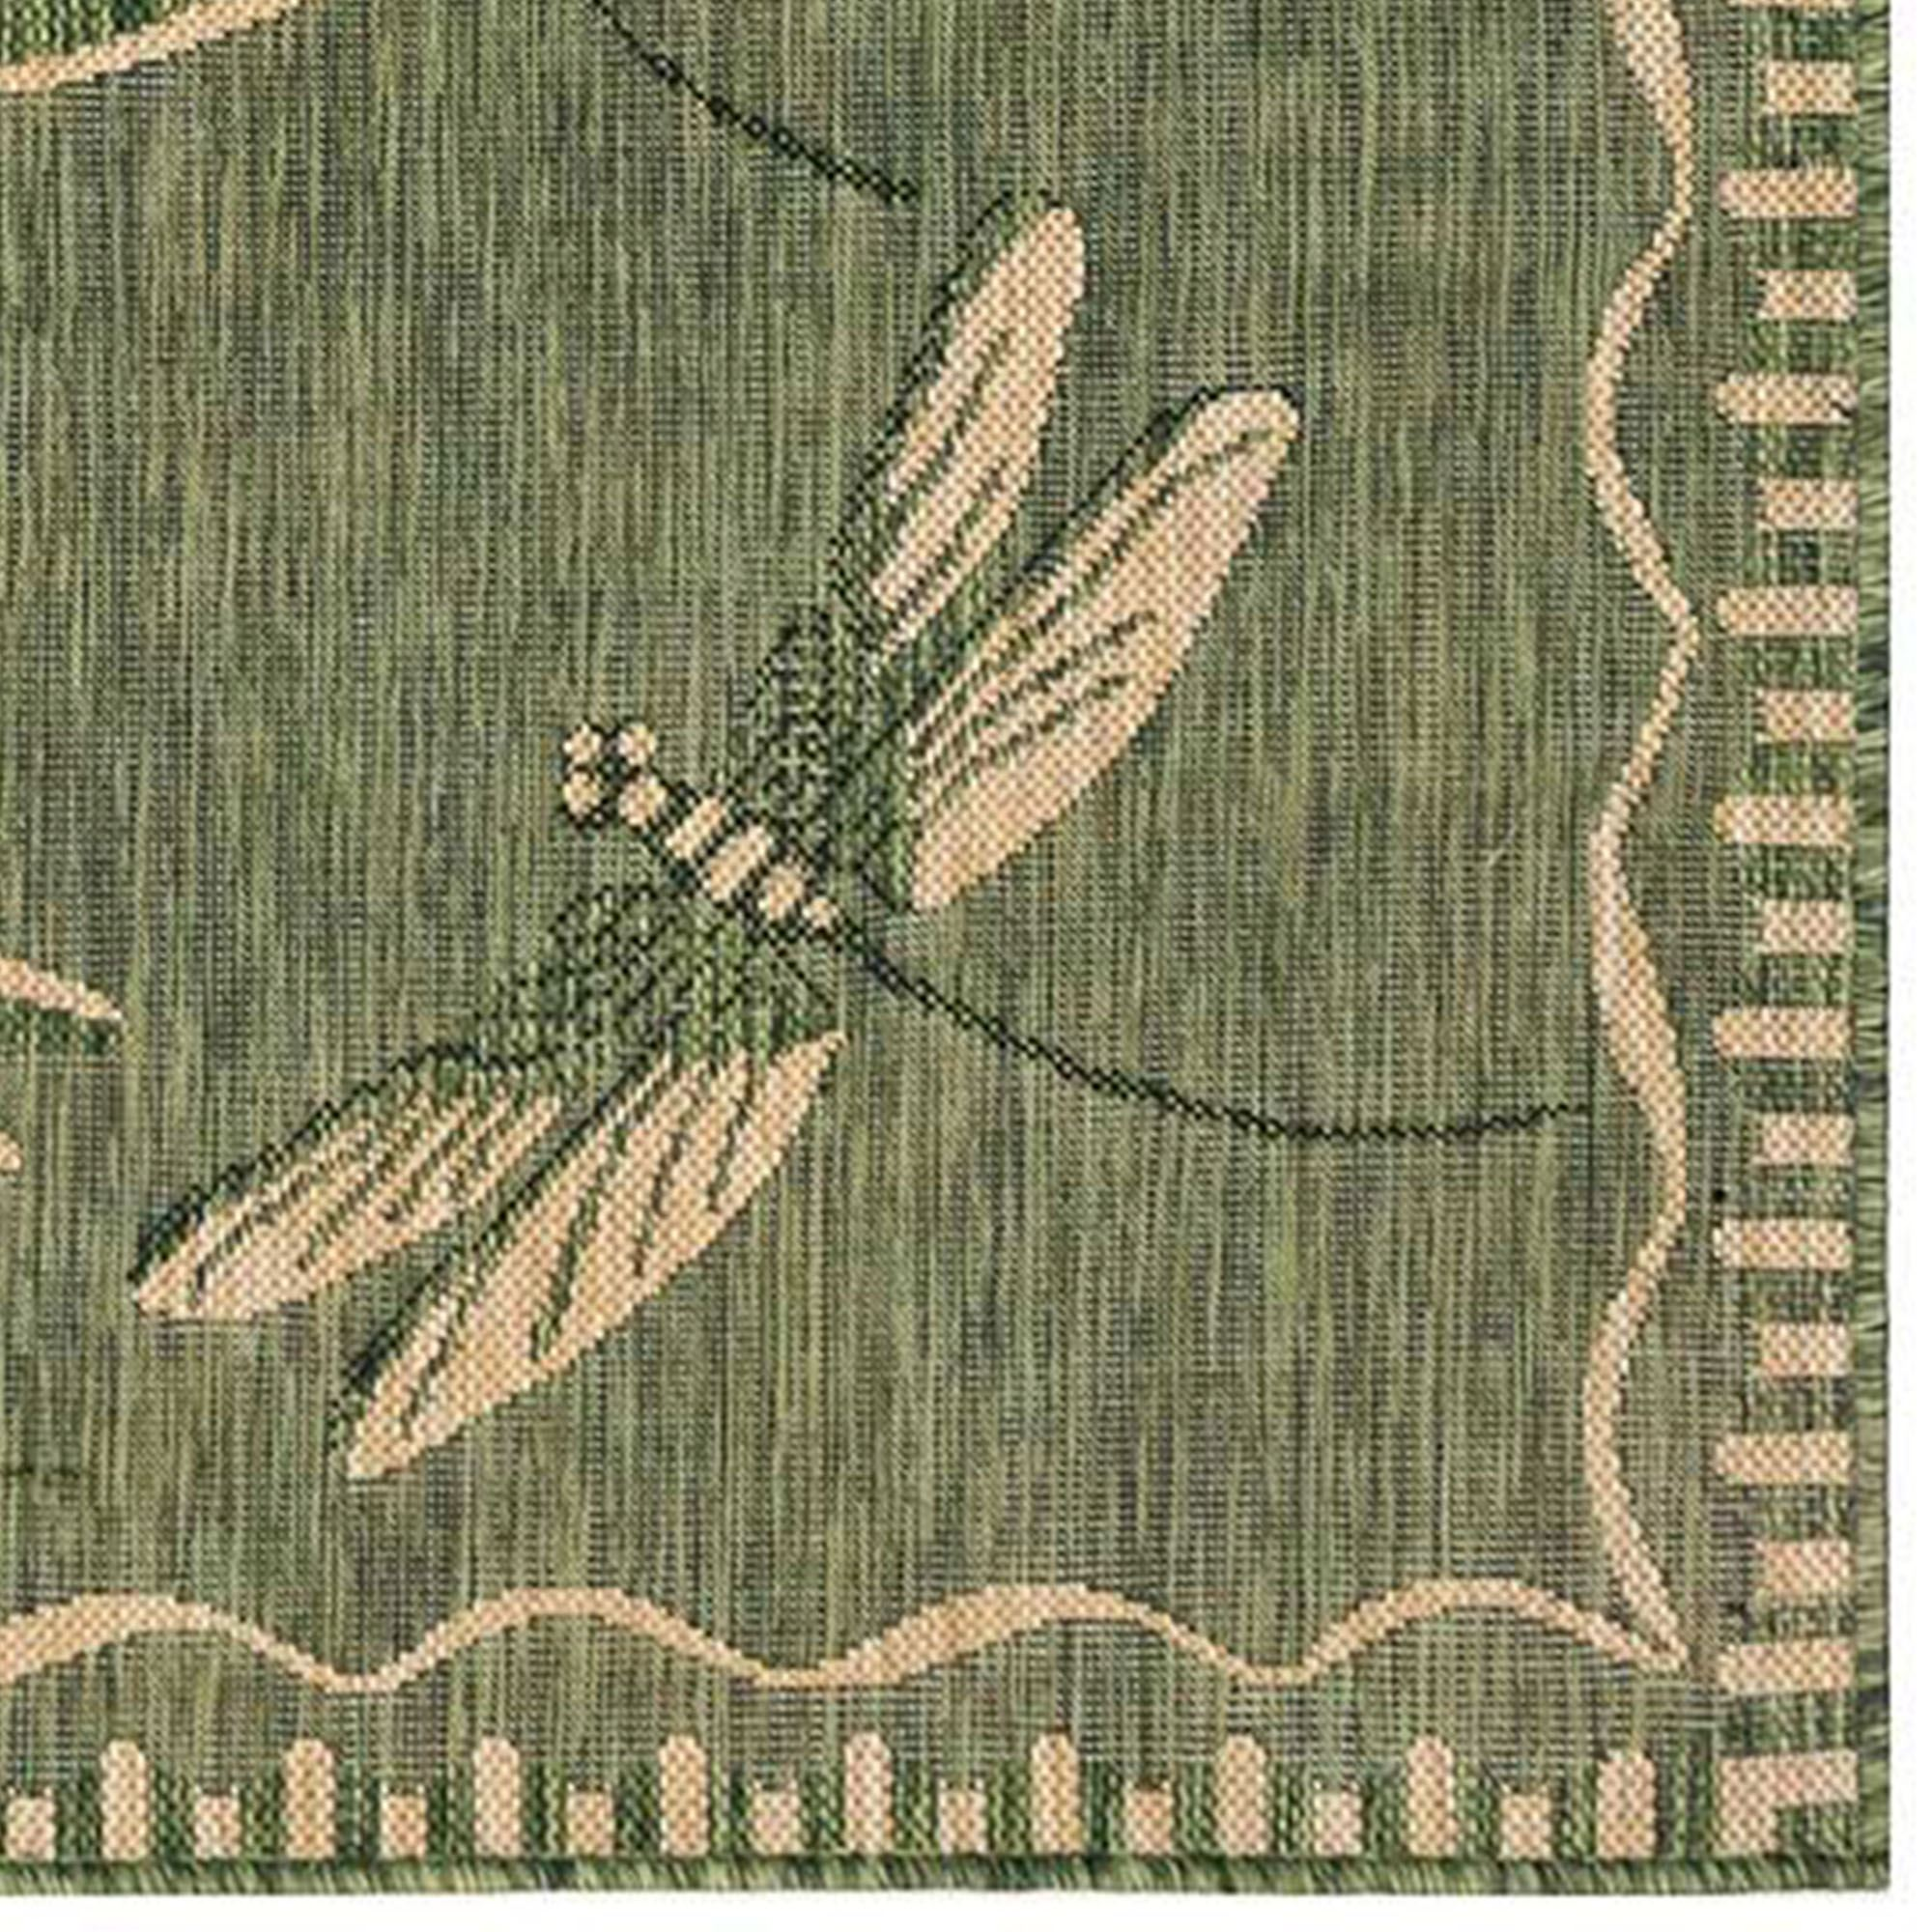 Dragonfly Flight Indoor Outdoor Rug Runner by Liora Manne